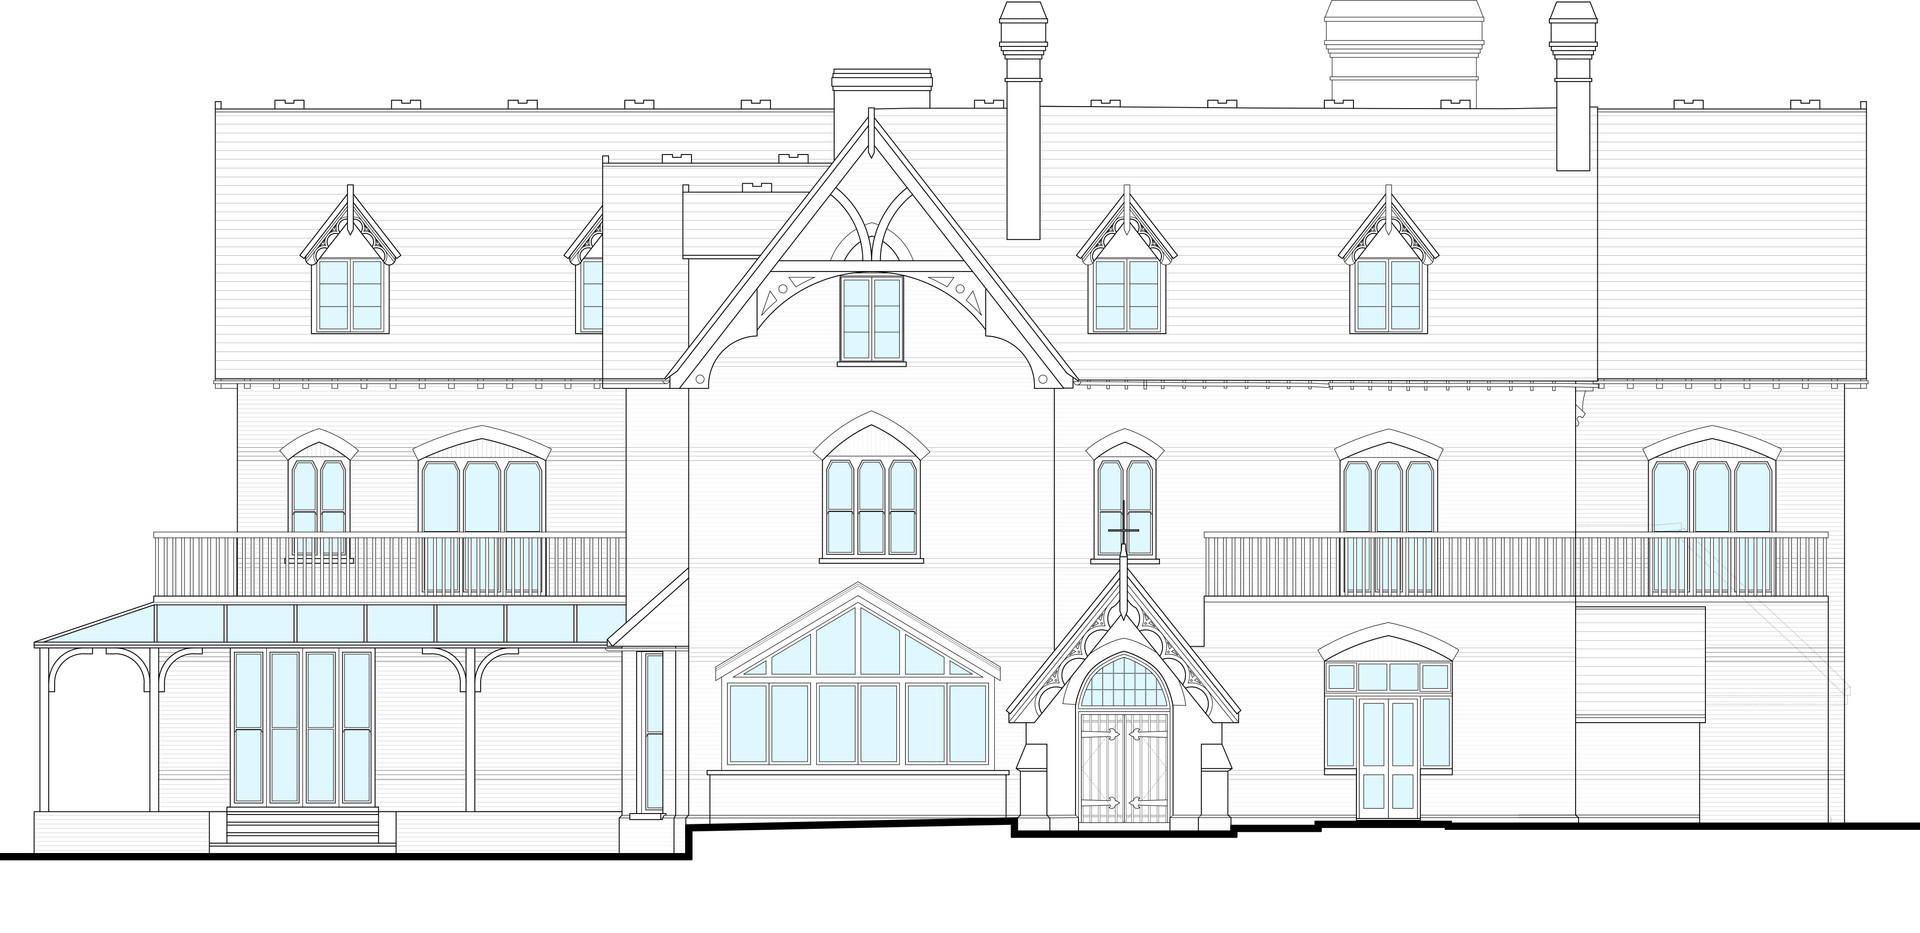 034 - Proposed South Elevation-034.jpg